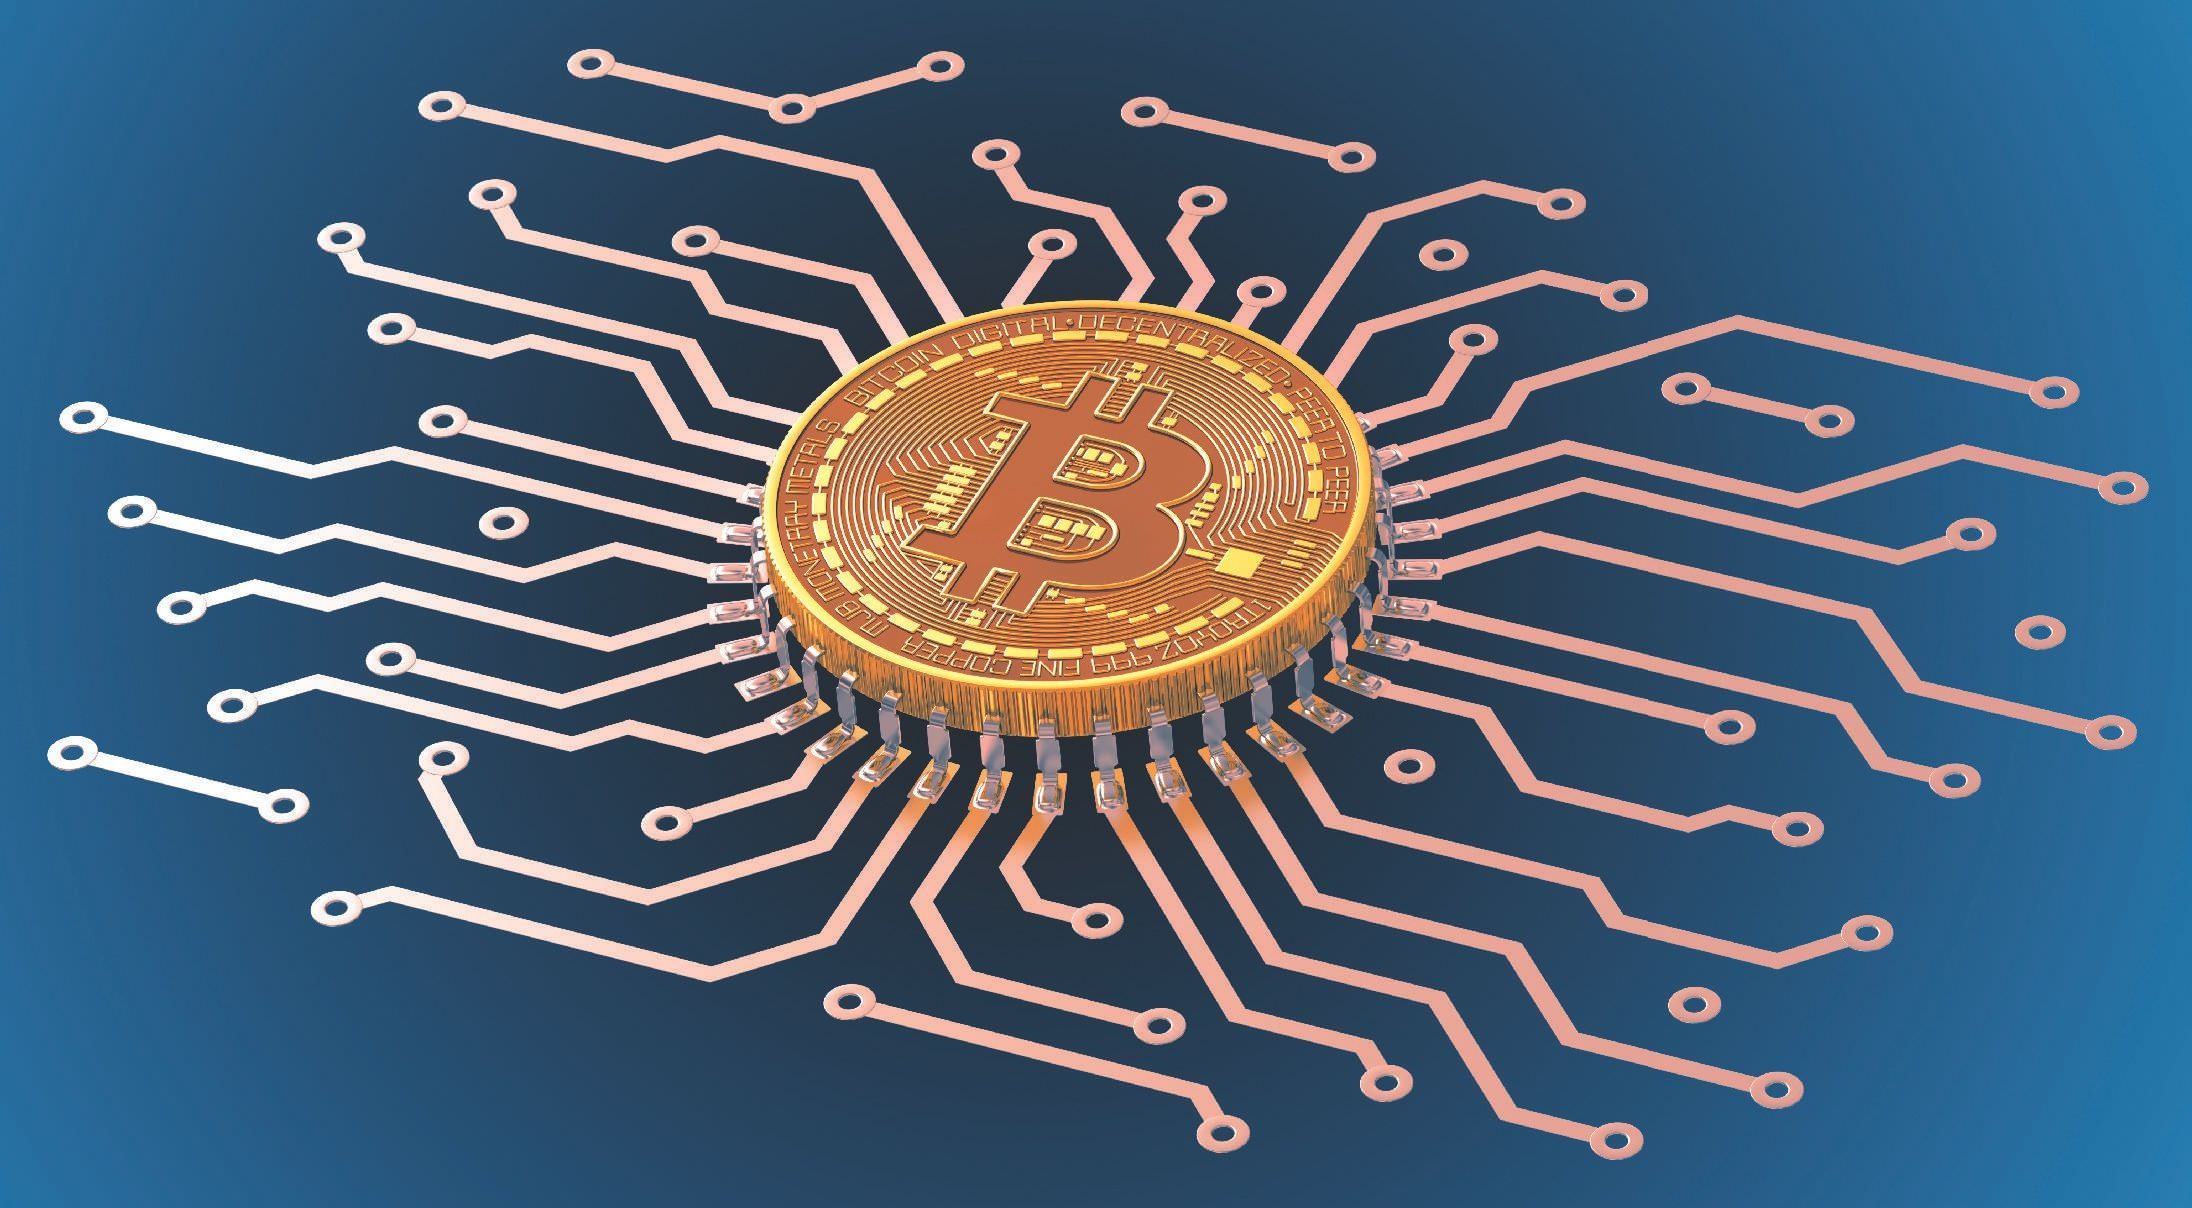 Has The Boat Sailed For Investing In Bitcoin?